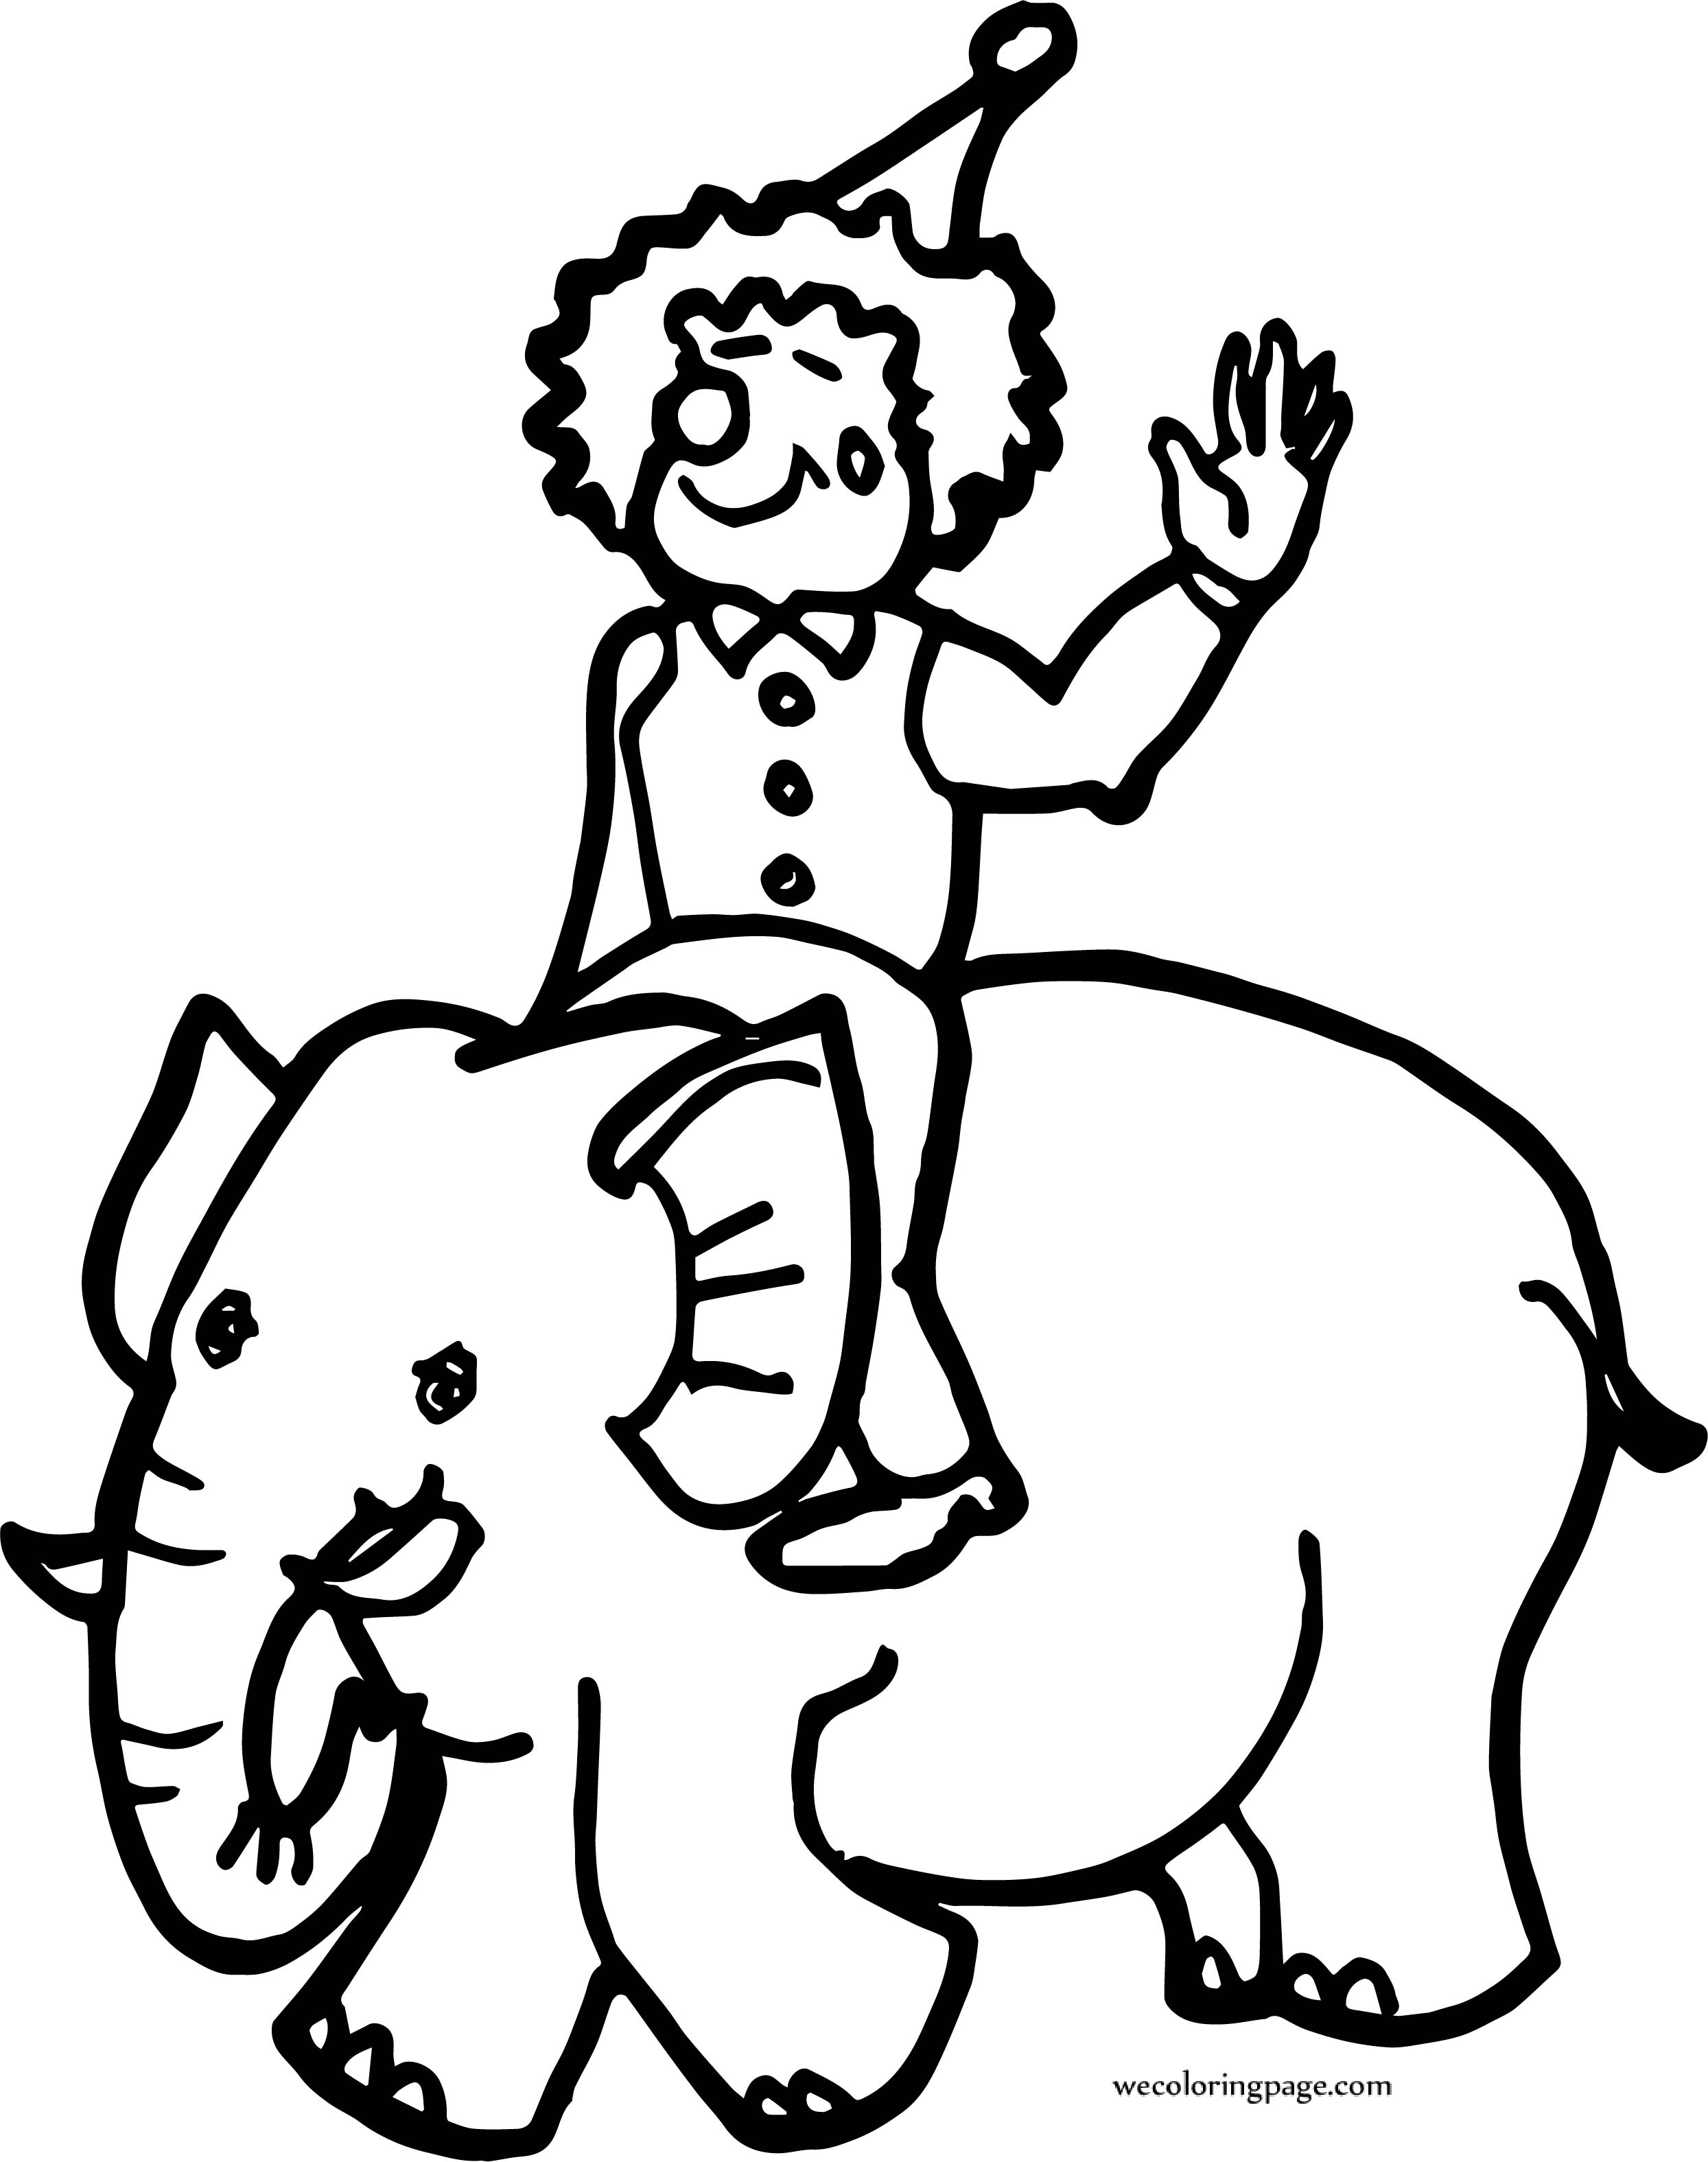 Circus Clown On Elephant Coloring Page Wecoloringpagecom - Circus-clown-coloring-pages